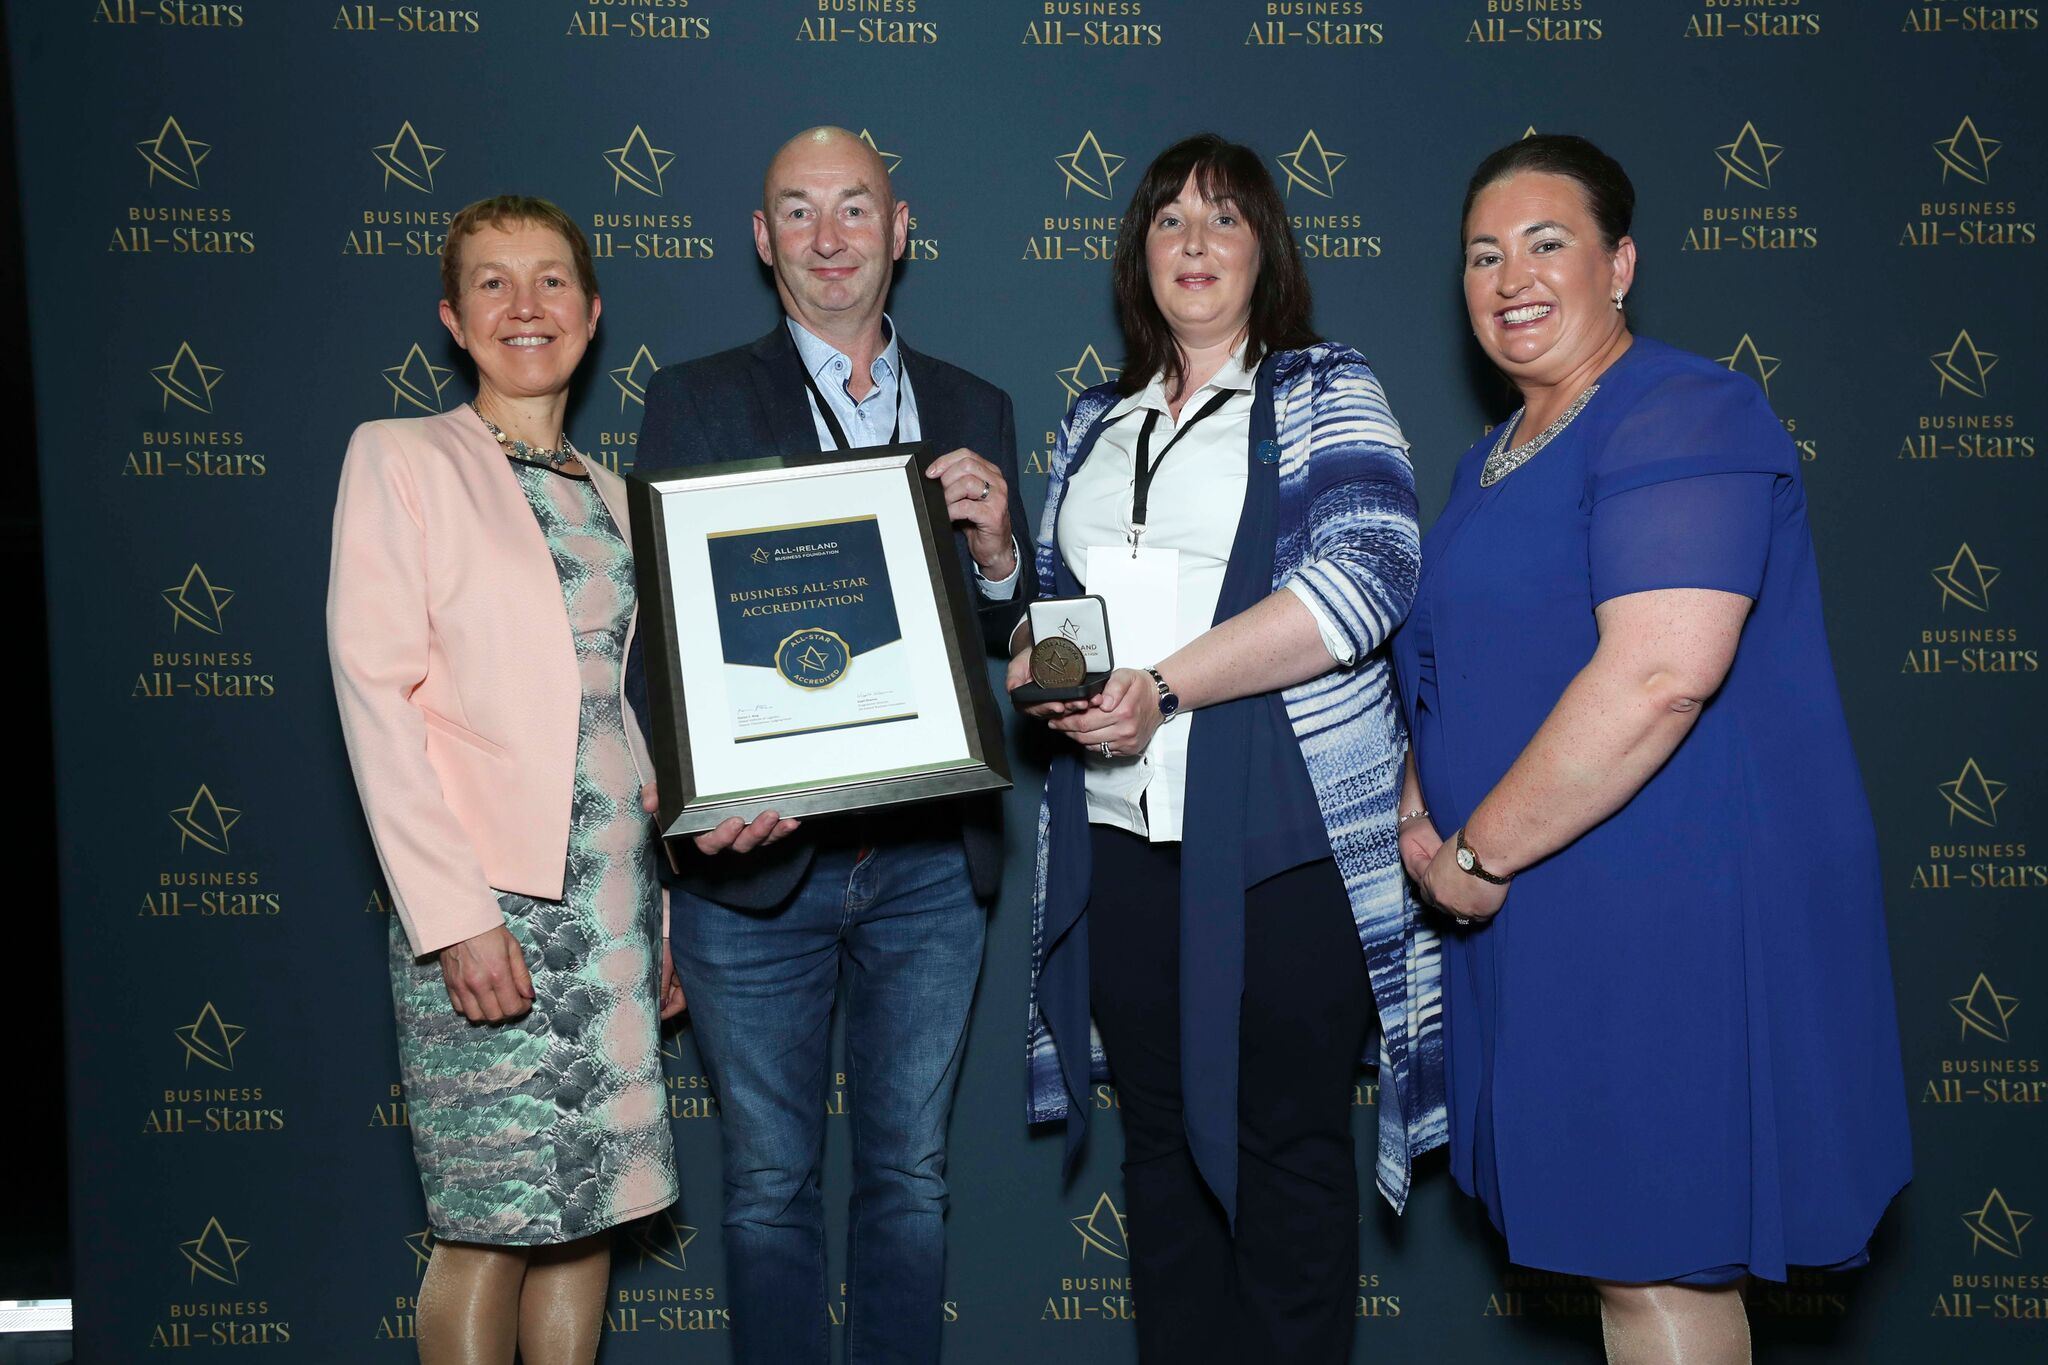 Alan & Louise Dawson - Sheds Direct Ireland representing receiving Business All-Star Accreditation at Croke Park from Dr Briga Hynes, Kemmy Business School, University of Limerick and Elaine Carroll CEO, All-Ireland Business Foundation.